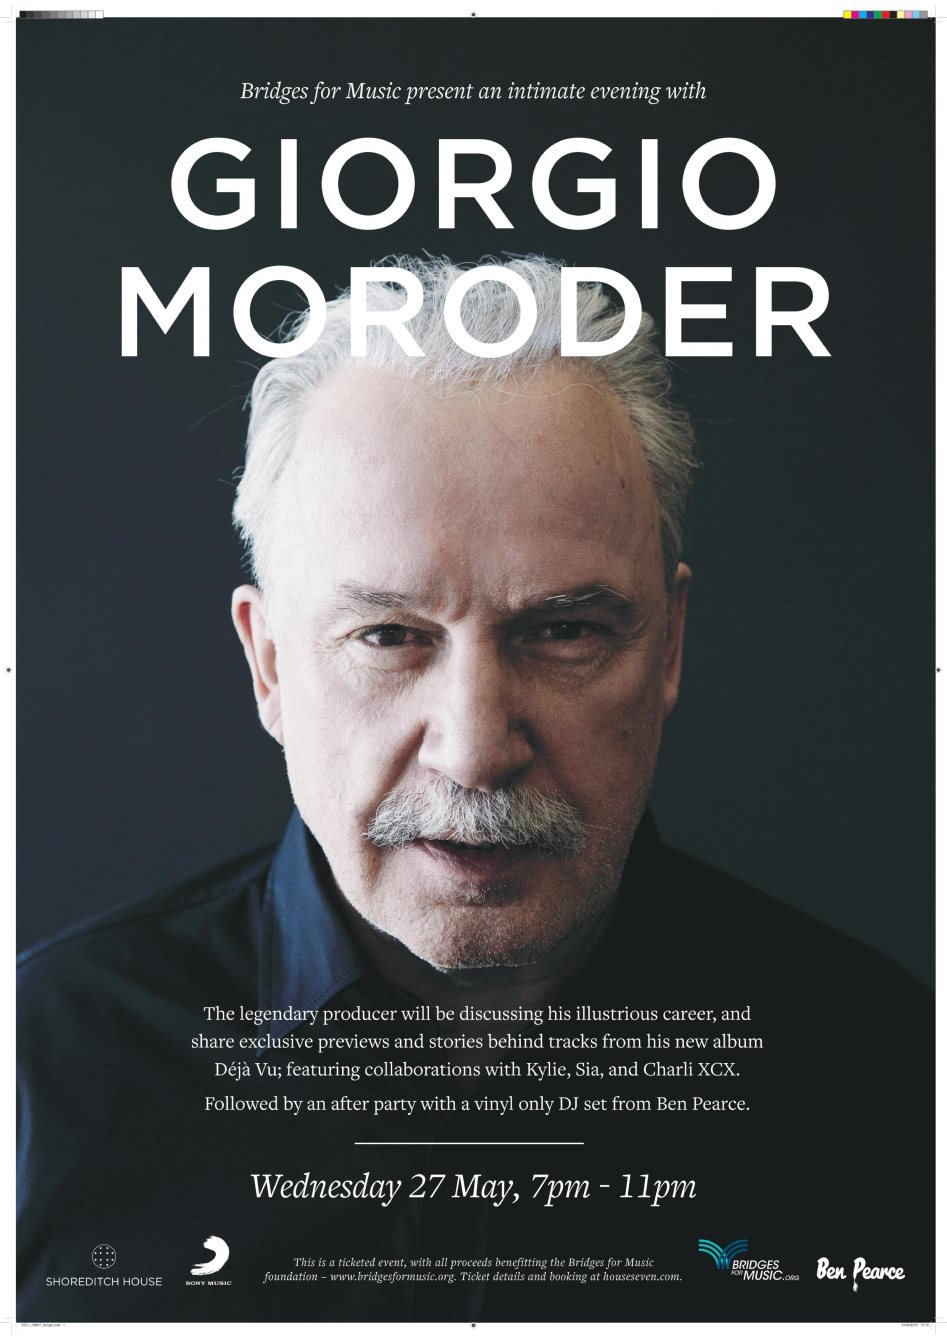 Page 1 | 27/05/2015 | London | Bridges for Music presents Giorgio Moroder Album Launch &a... Published by DjMaverix on Monday, 25 May 2015 in Live Set - Dance Hall - Party (Events)